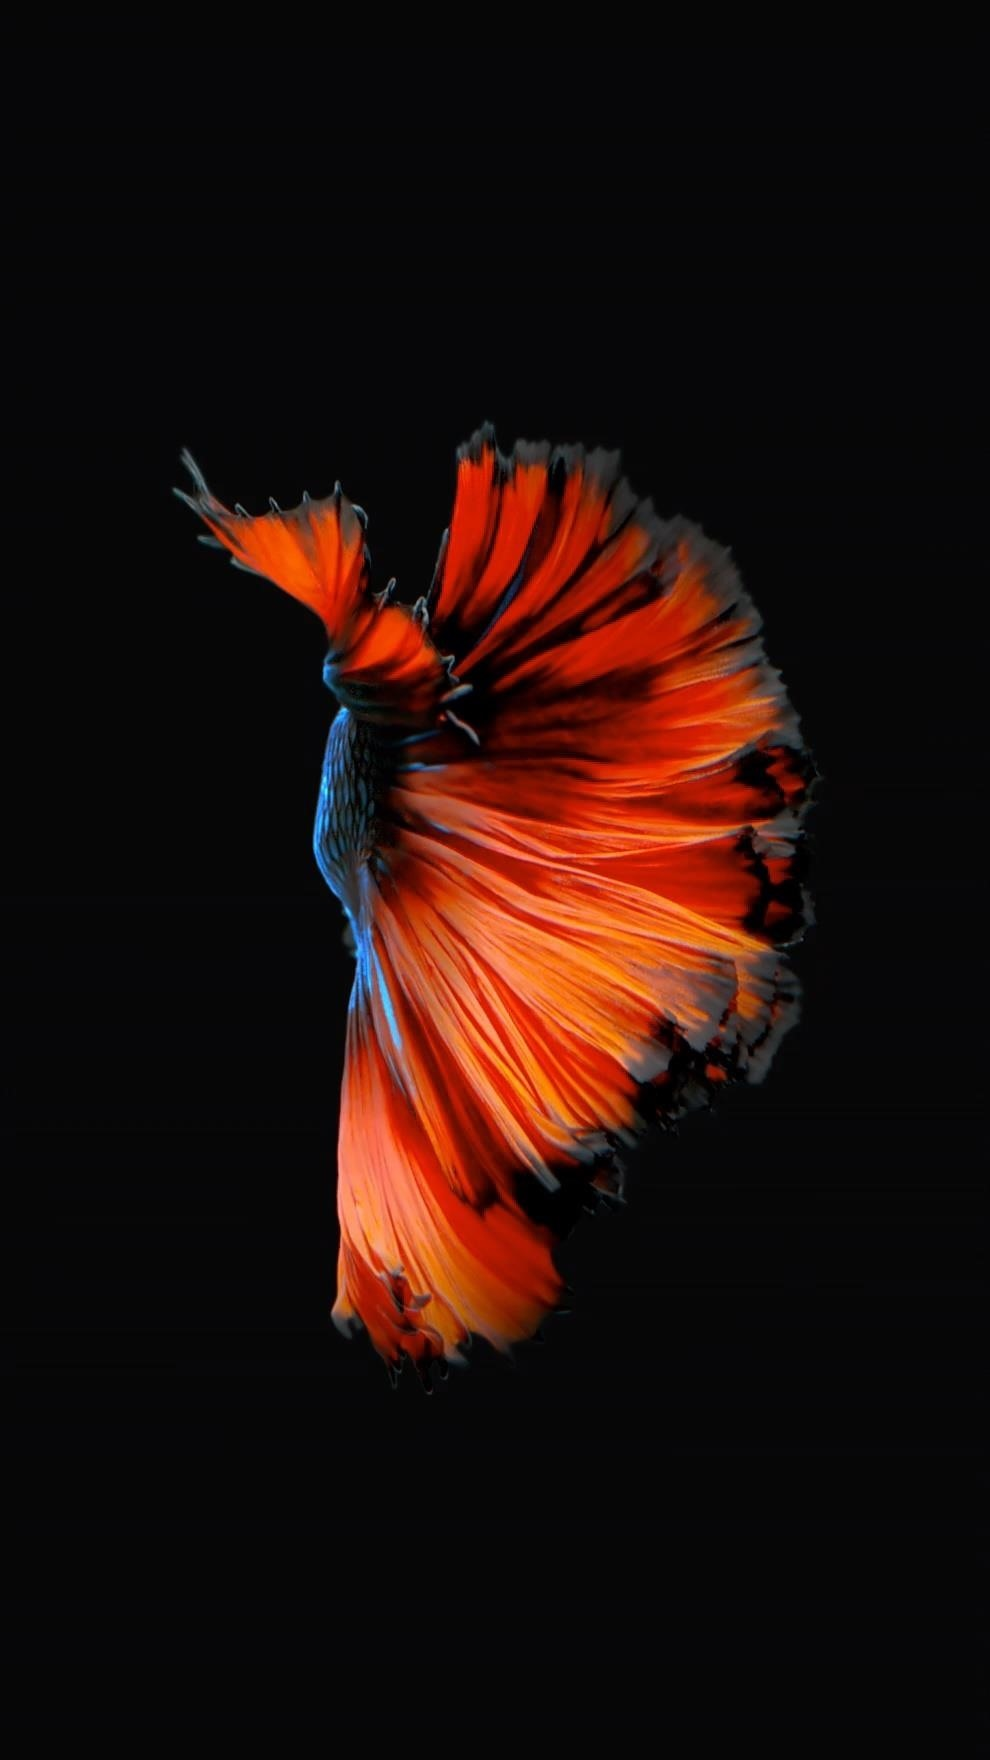 Free Download How To Get Apples Live Fish Wallpapers Back On